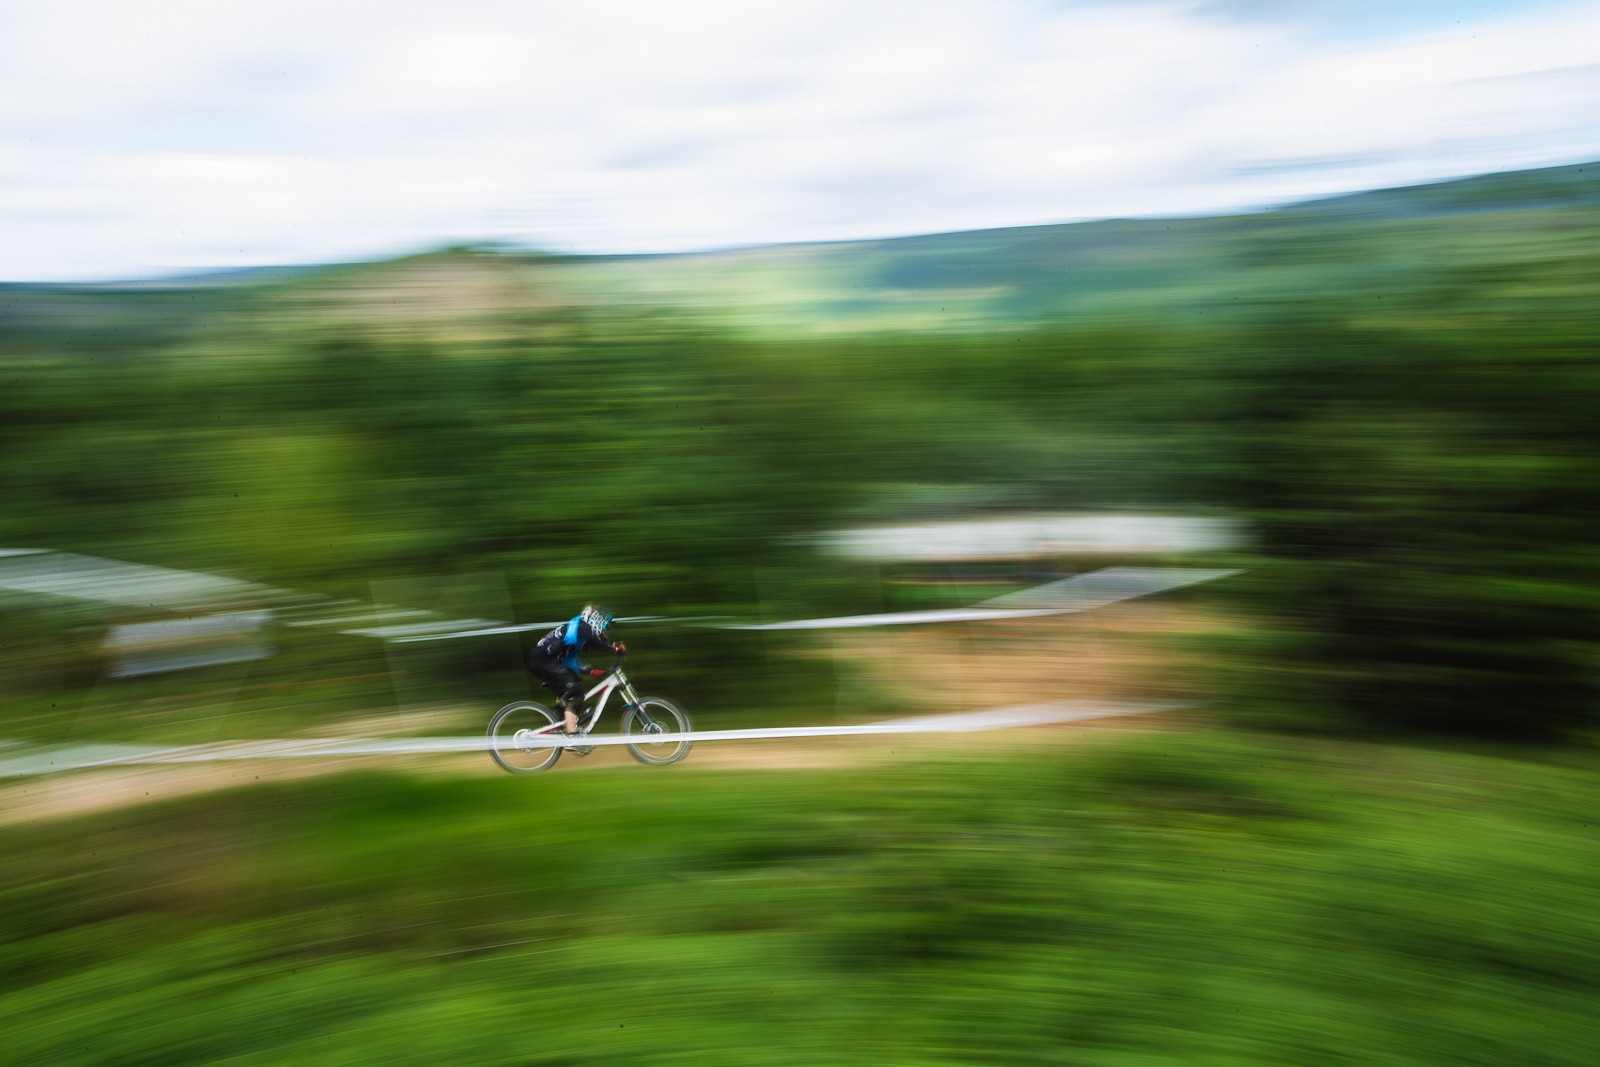 British DH Series, Bala - RACE REPORT - 2015 British Downhill Series Bala - Mountain Biking Pictures - Vital MTB